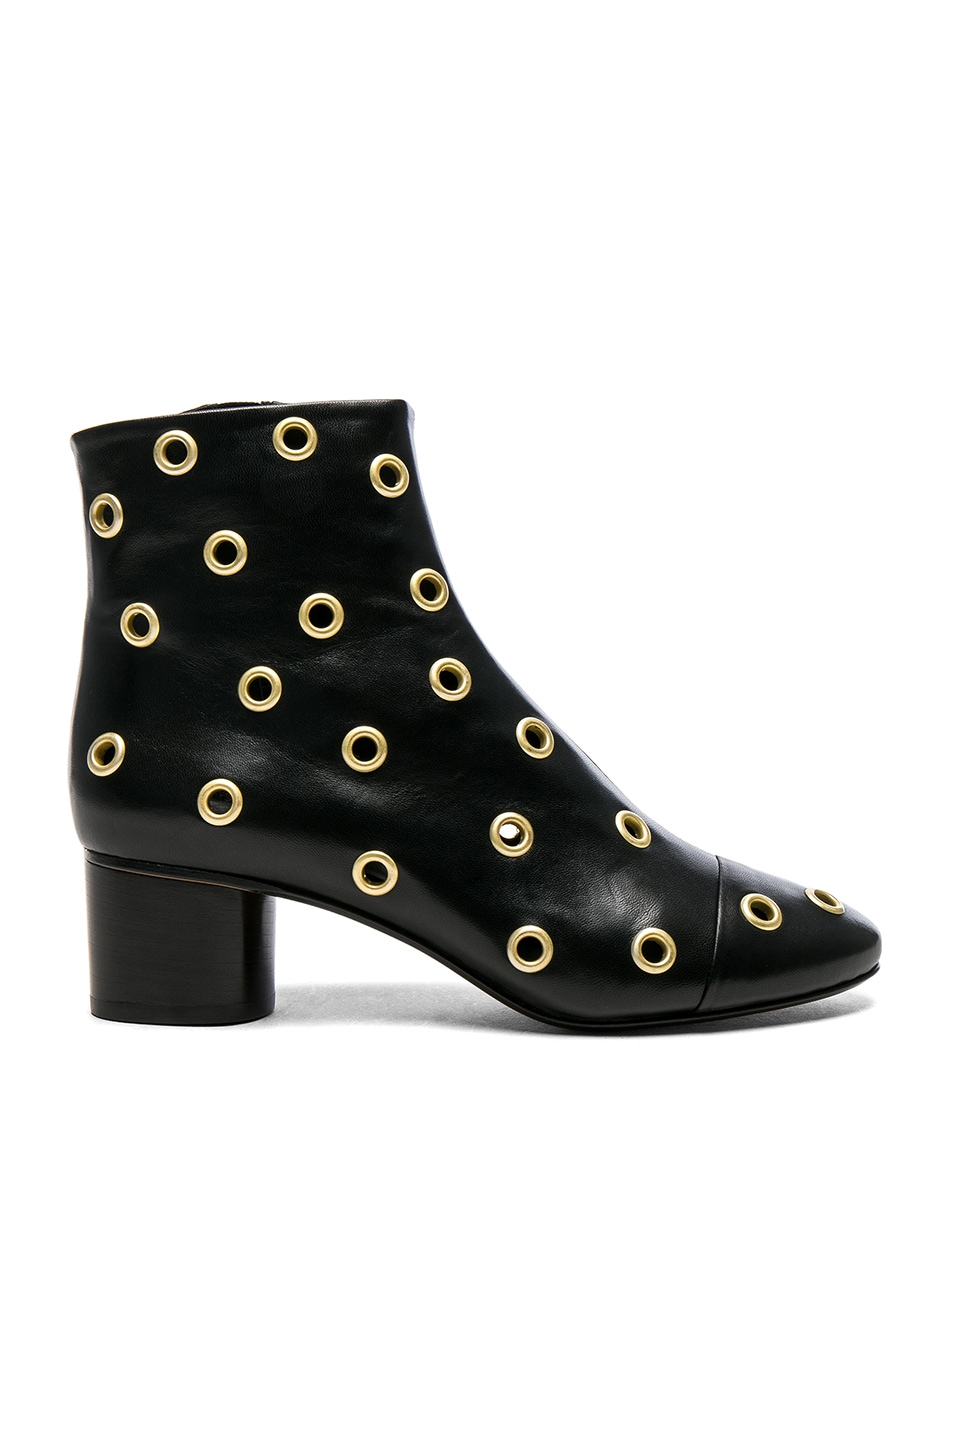 Image 1 of Isabel Marant Eyelet Leather Danay Ankle Boots in Black Dore